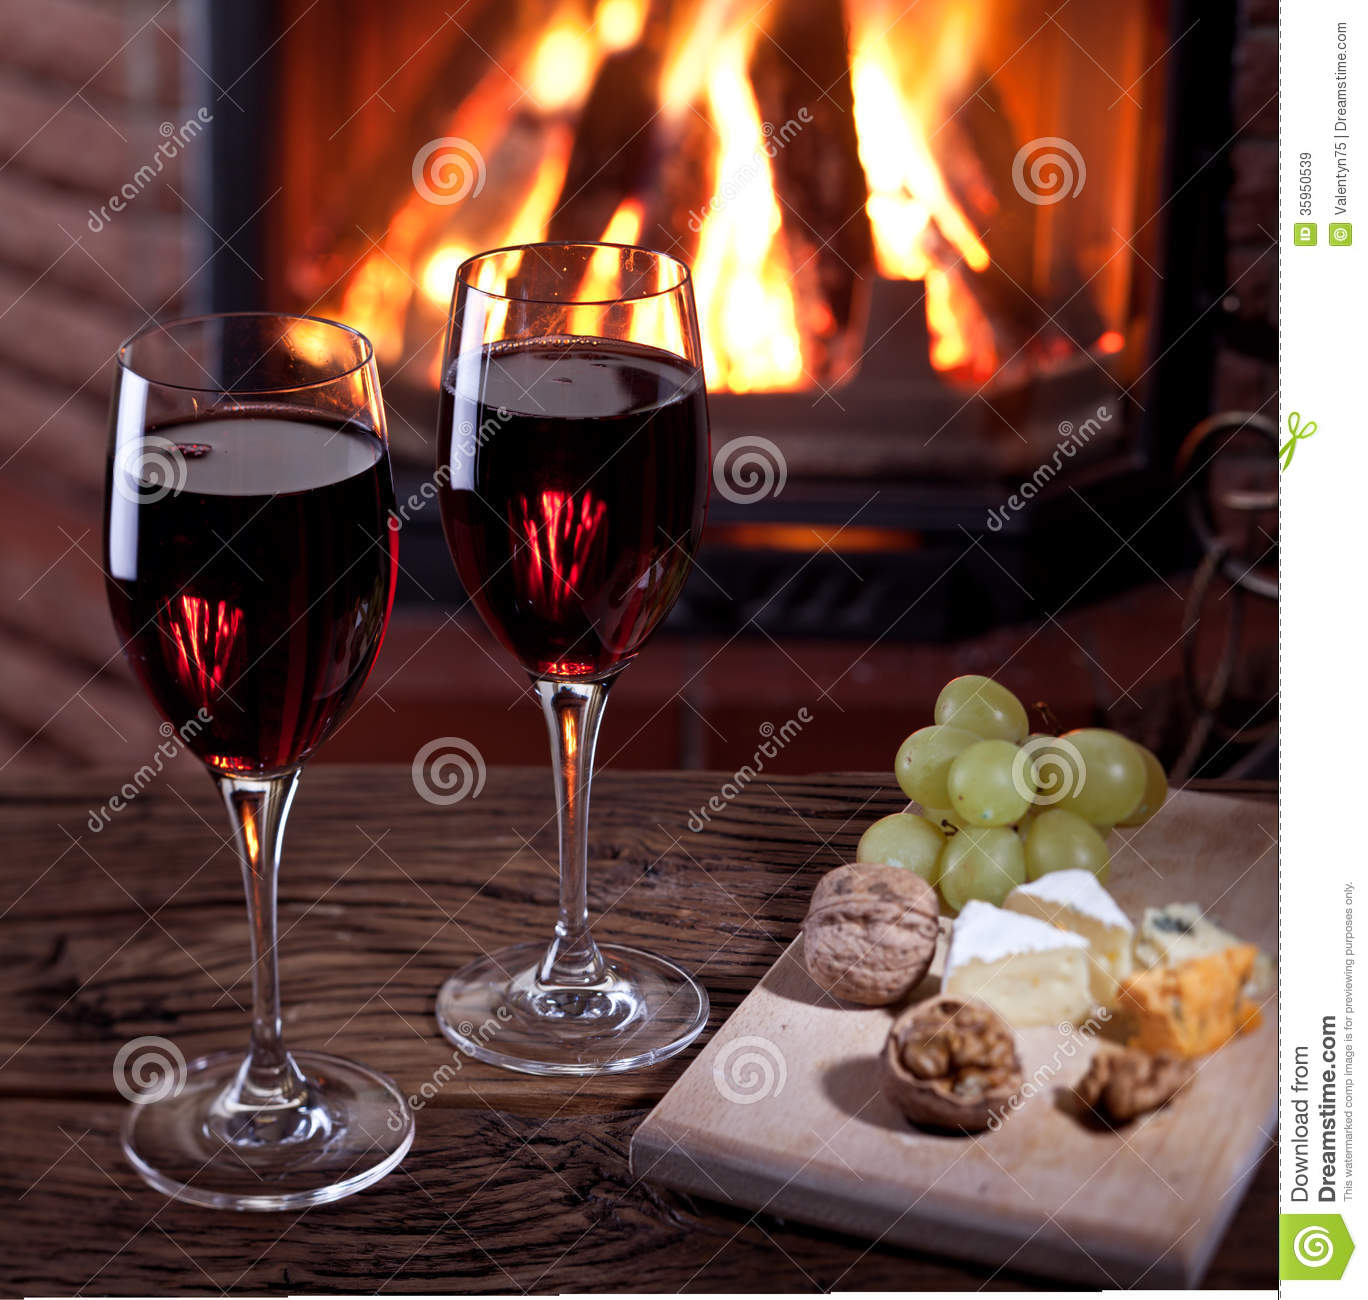 romantic dinner wine fireplace stock images 202 photos